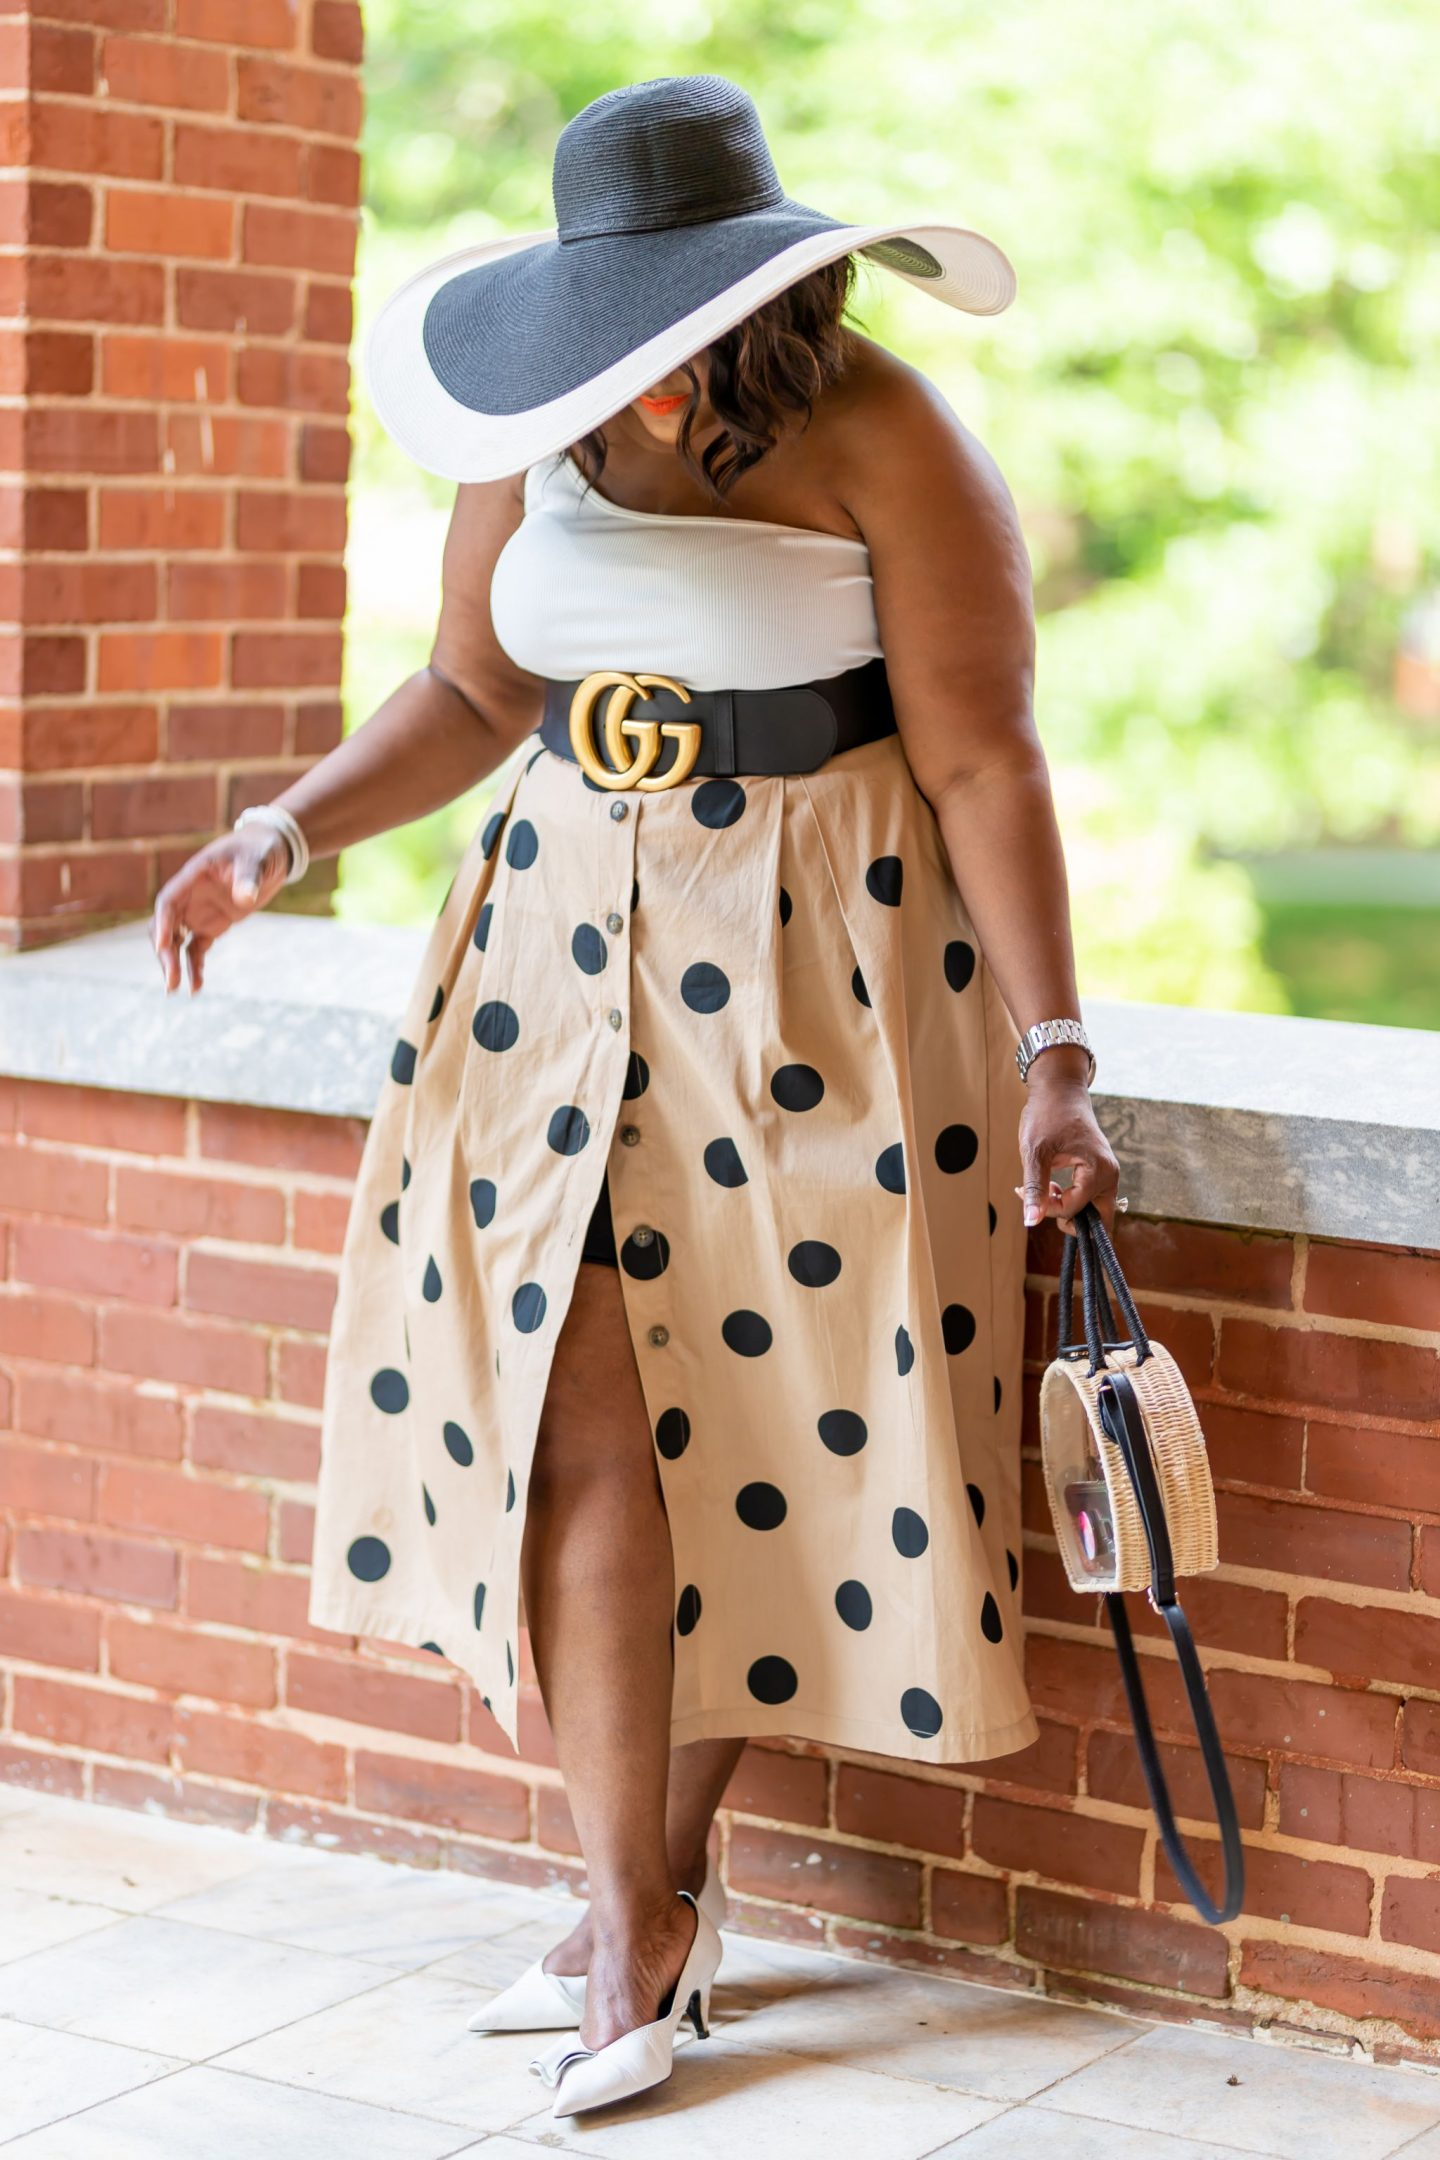 Blogger Nikki Free wearing khaki skirt with black polka dot print from Target